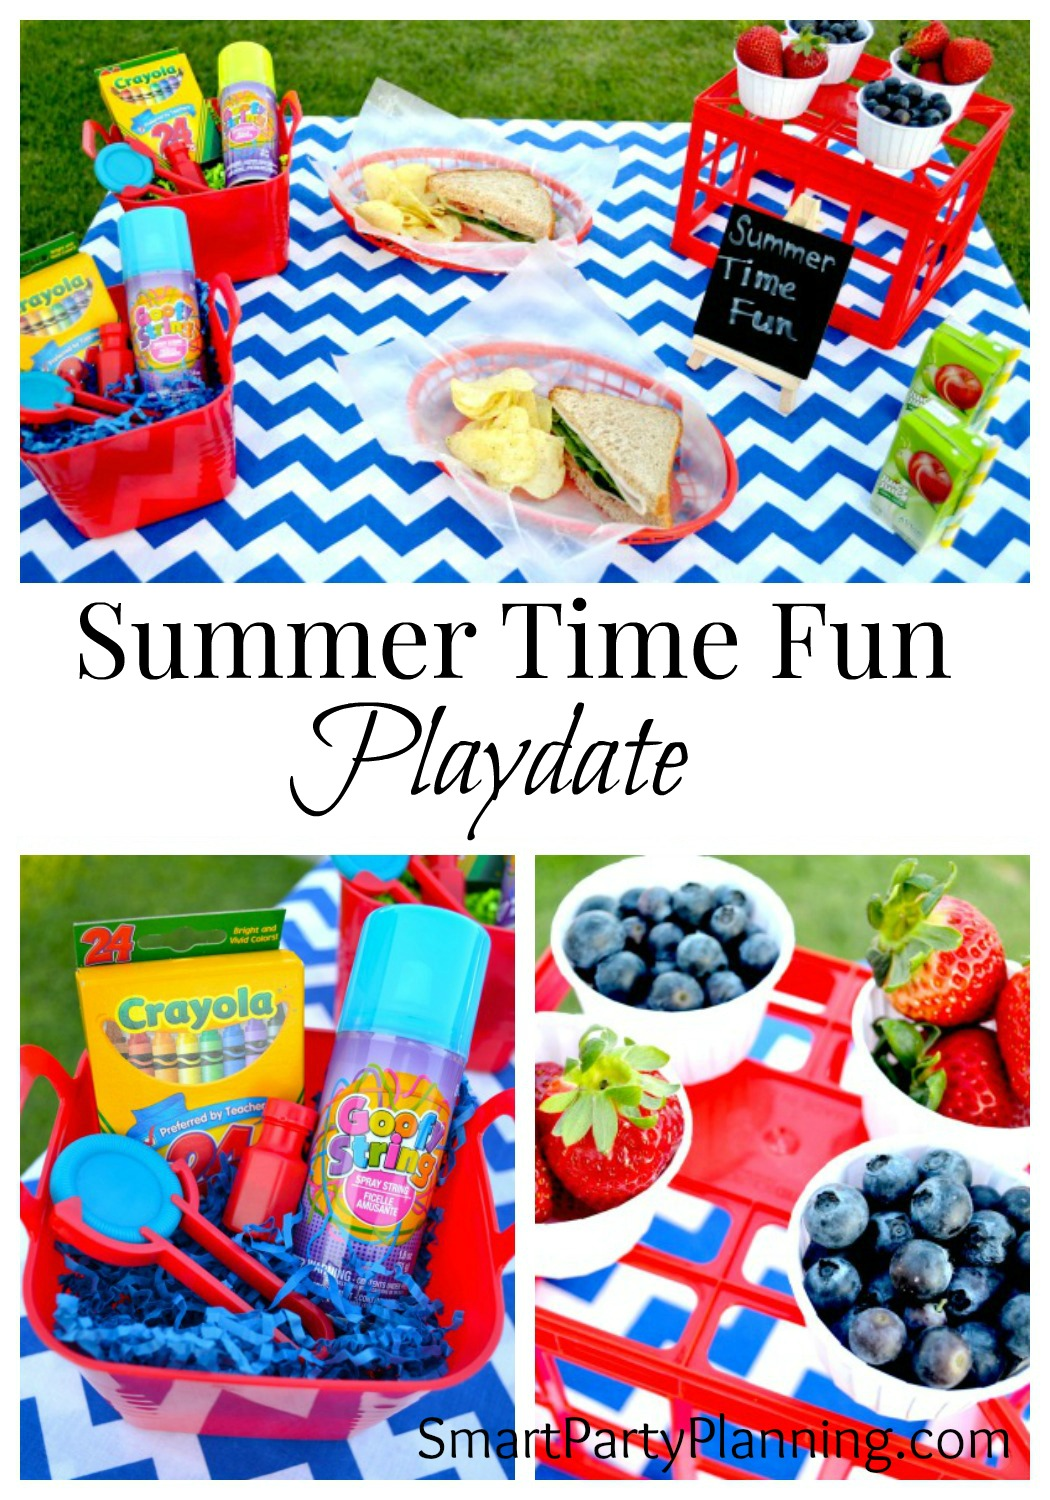 Summer Time Fun For Kids